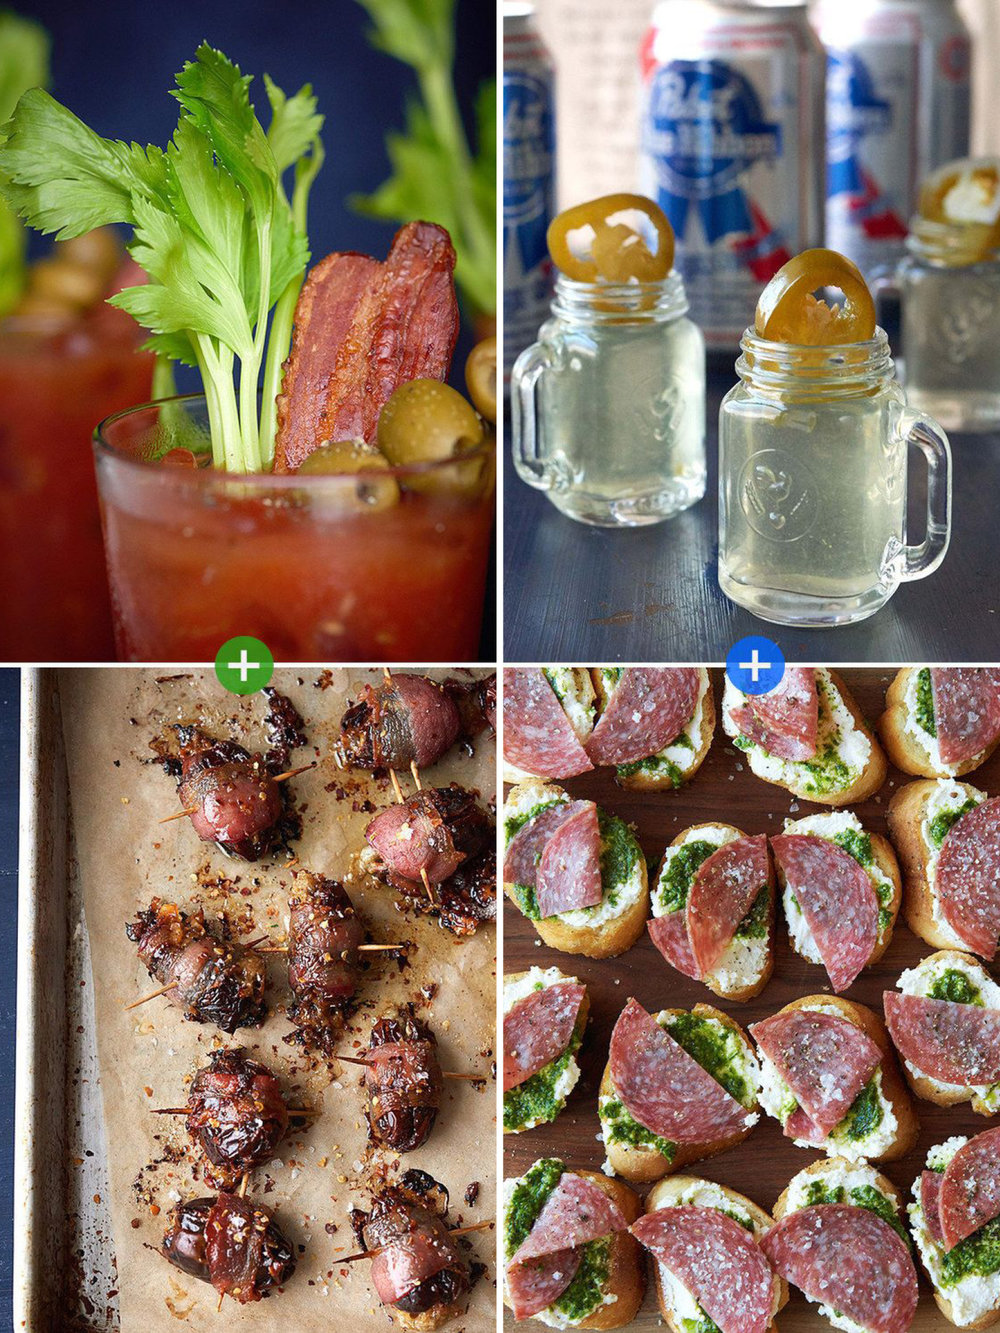 26 Delicious Things To Serve At Your Holiday Party Booze + bites = a magical combo.  Buzzfeed